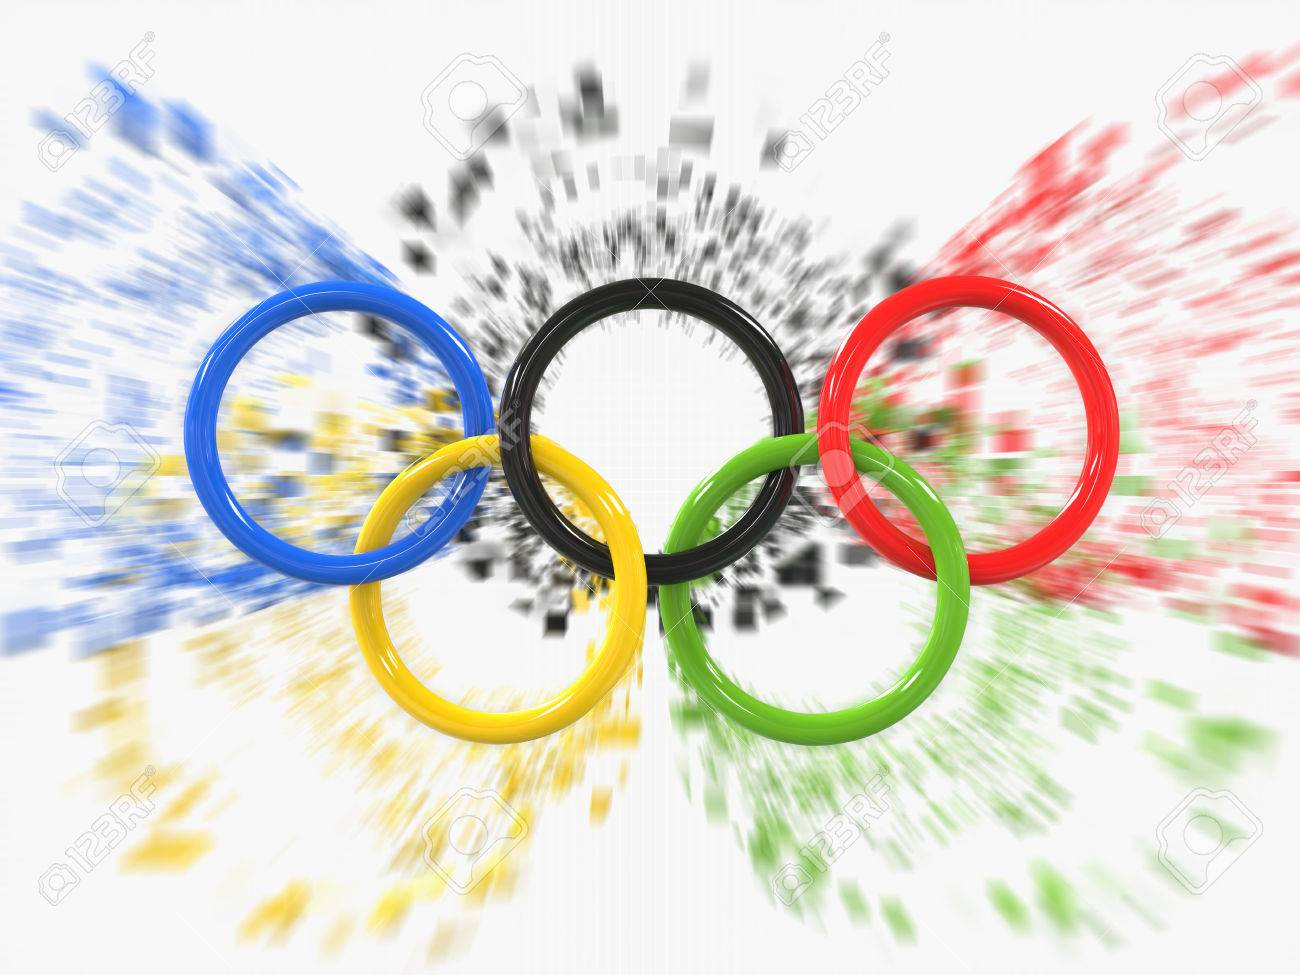 Olympic games rings zoom pixel effect 3d illustration stock olympic games rings zoom pixel effect 3d illustration stock photo 62235723 biocorpaavc Images